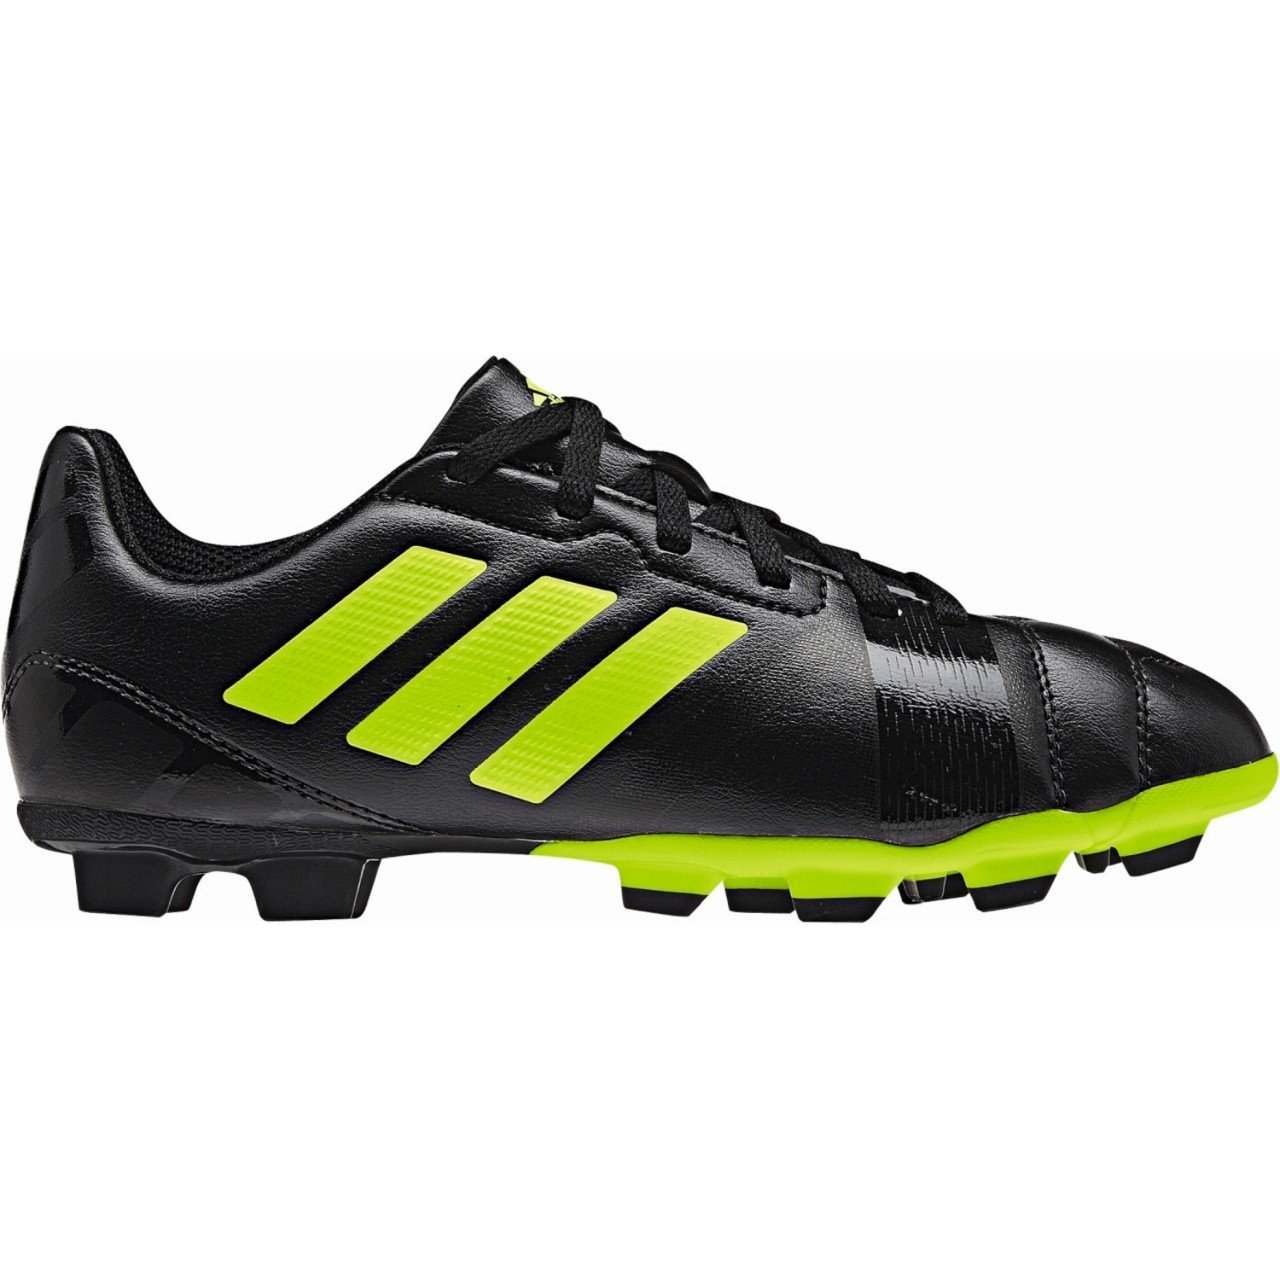 online store 3d8b3 e8cbb Nitrocharge 3.0 TRX FG Kids Football Boots Black Solar Slime  Amazon.co.uk   Sports   Outdoors